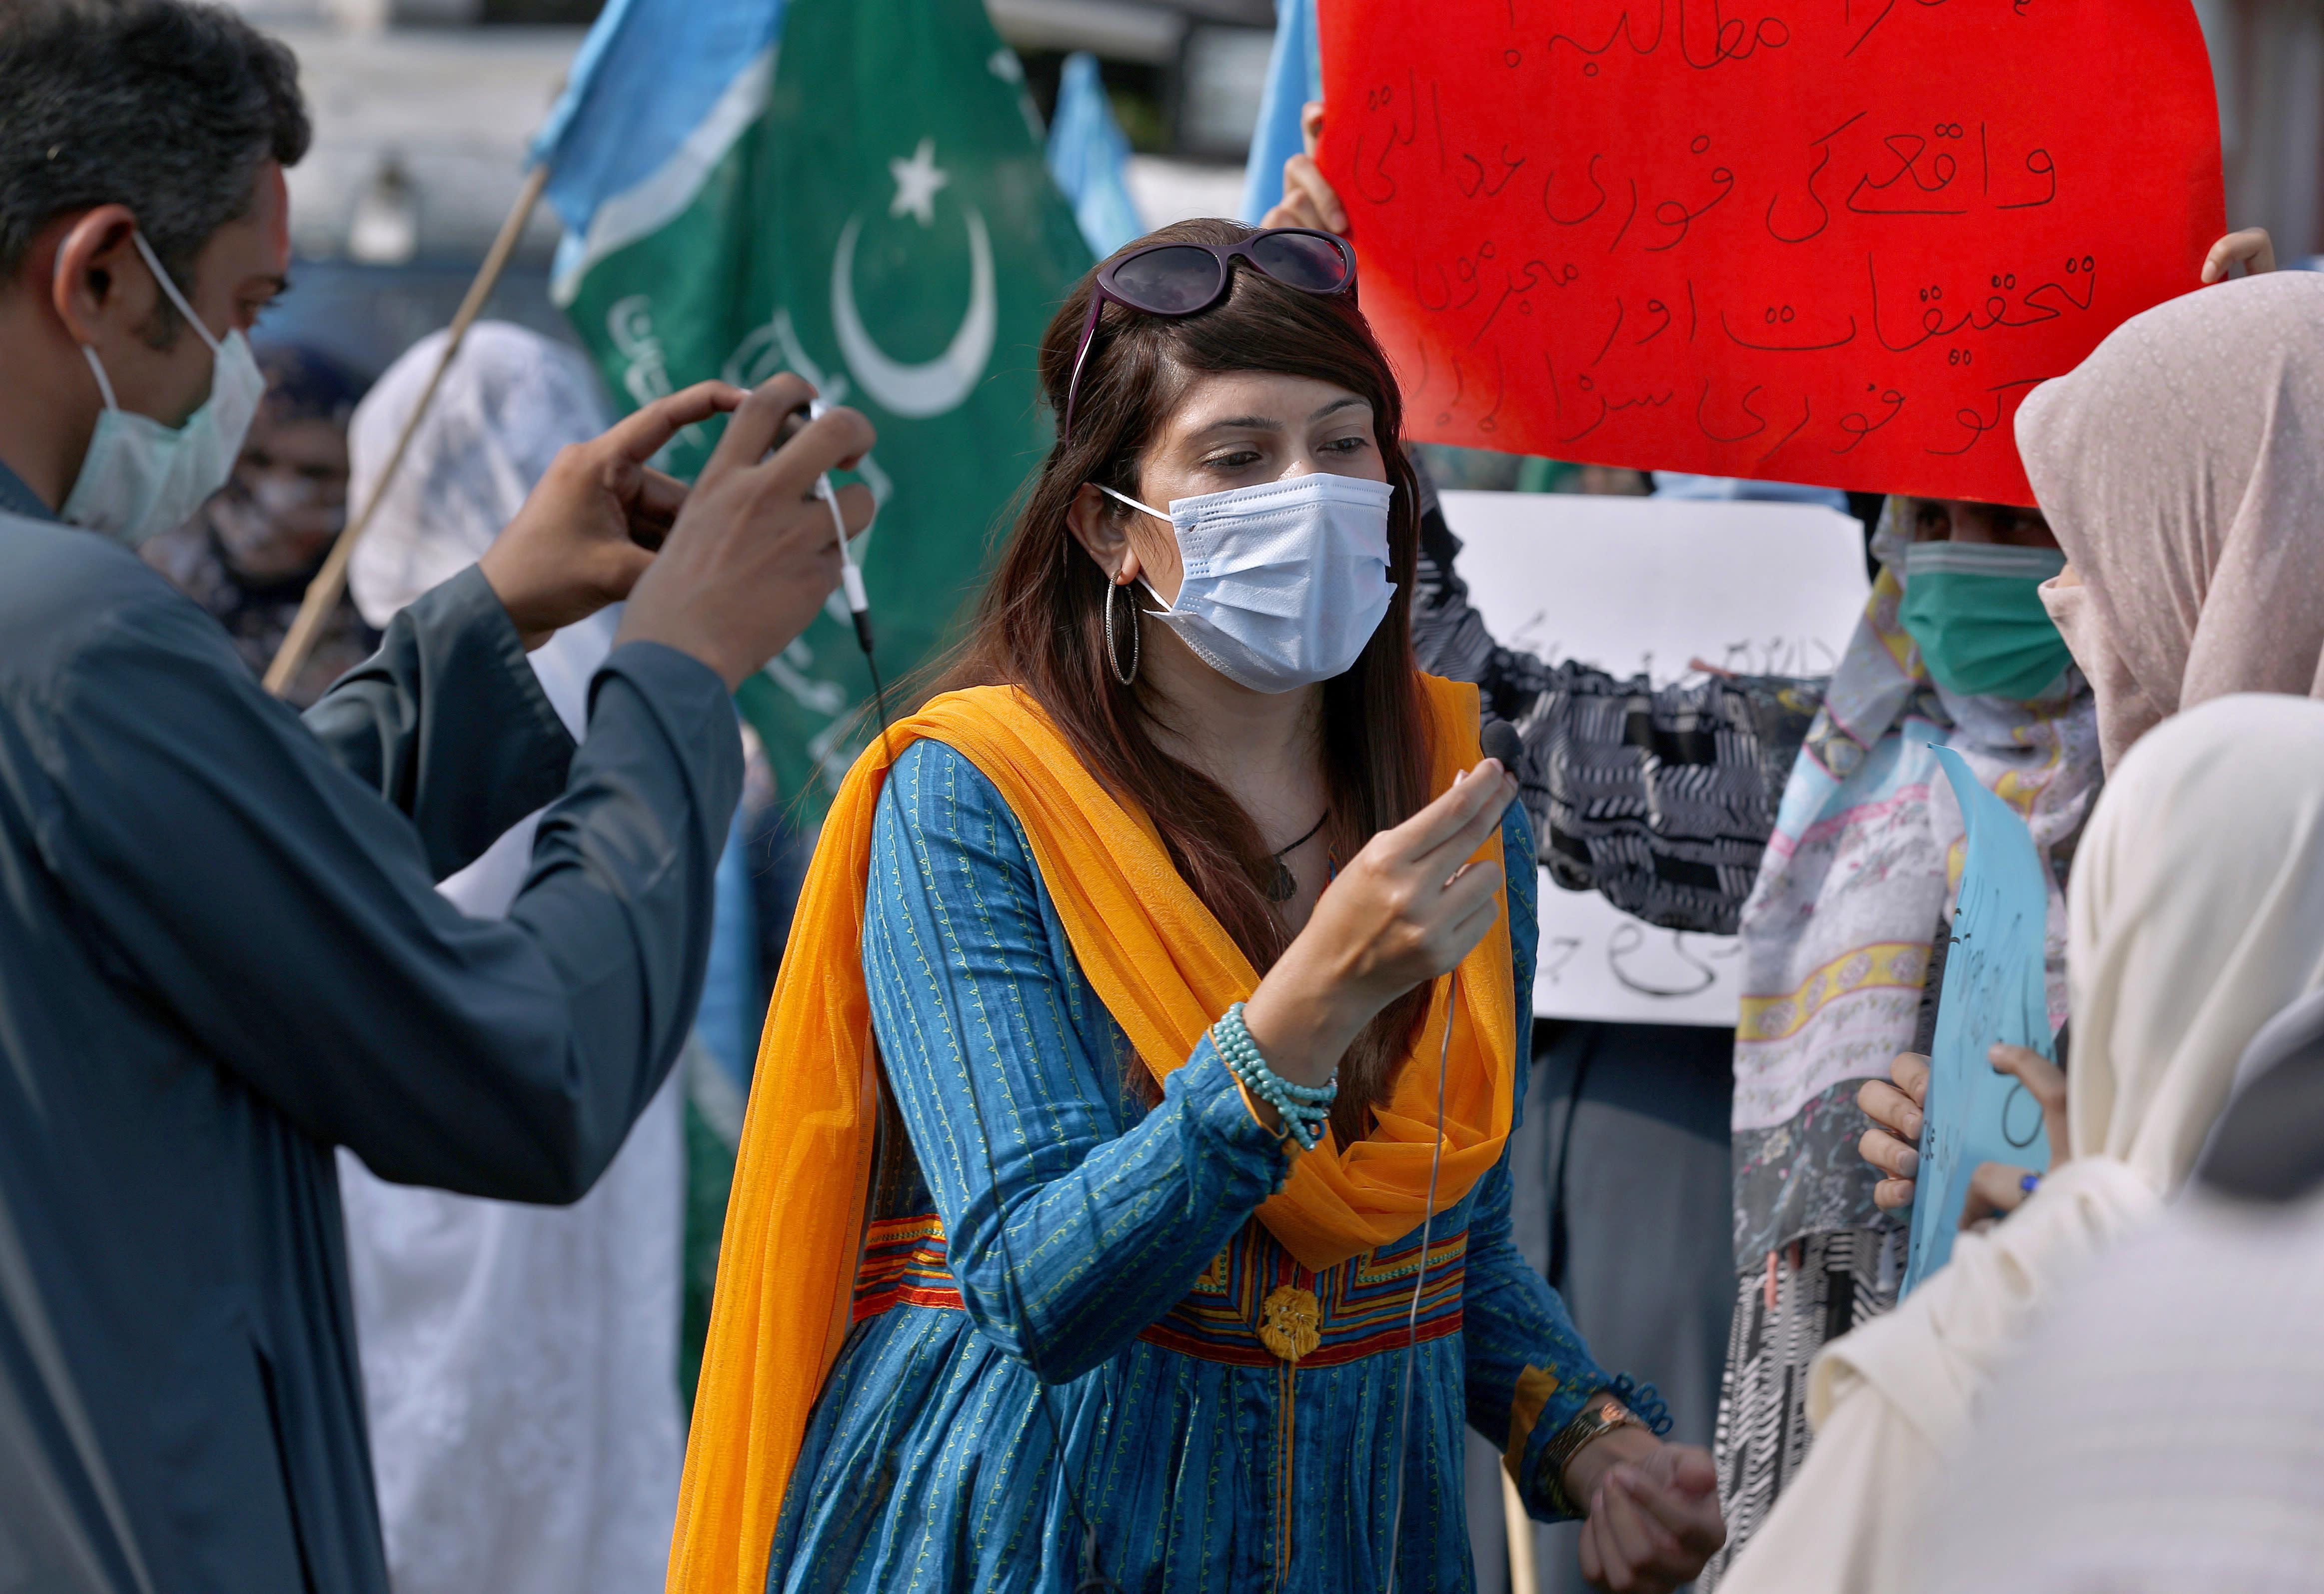 In this Friday, Sept. 11, 2020 photo, Mona Khan, a freelance female journalist, interviews during a rally, in Islamabad, Pakistan. Social media attacks against Pakistan's women journalists have been vile and vicious, some threatening rape, others even threatening death and the culprits are most often allied to the ruling party, even prompting the Committee to Protect Journalists to issue a statement on Friday, Sept. 18, condemning the relentless attacks. (AP Photo/Anjum Naveed)